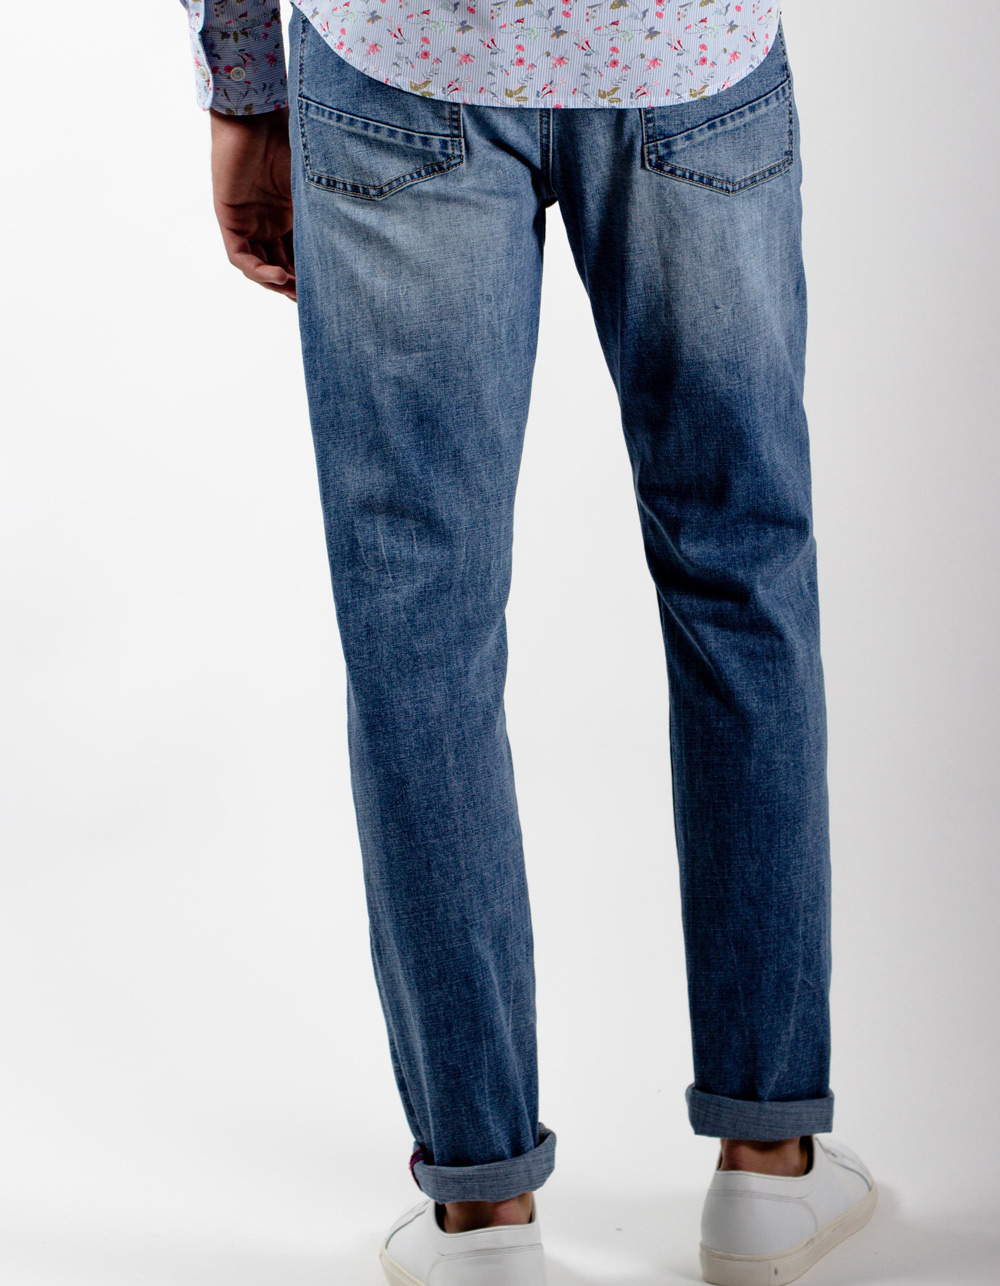 Medium light blue jeans - Backside